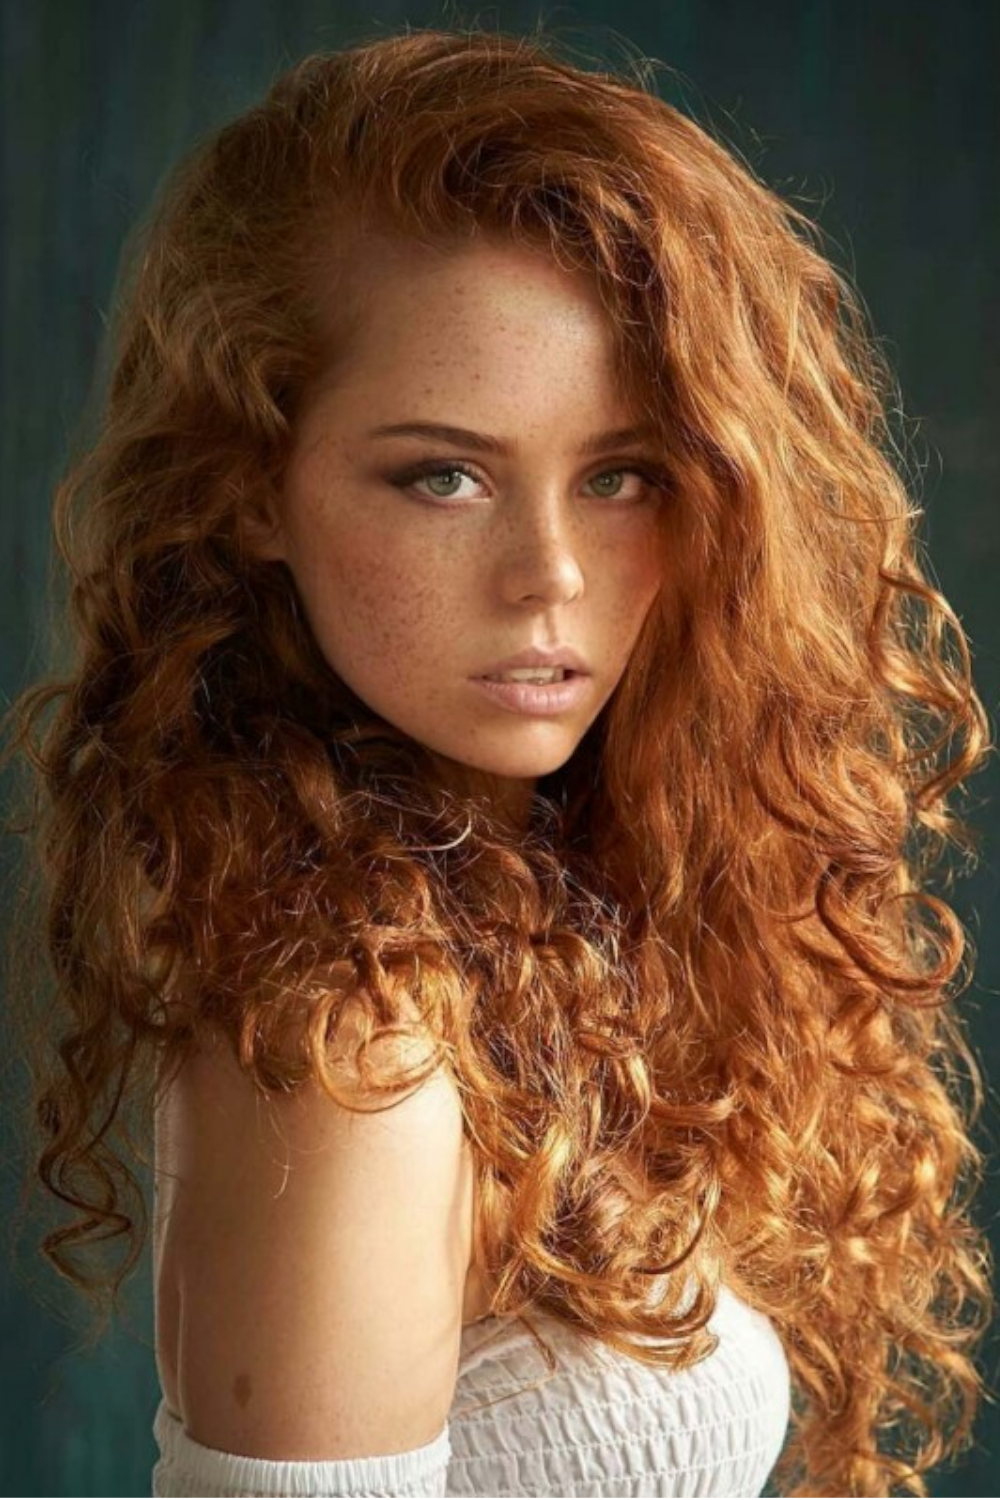 Red Hair Girl In 2020 Frisuren Fur Rothaarige Balayage Frisur Sommersprossen Madchen